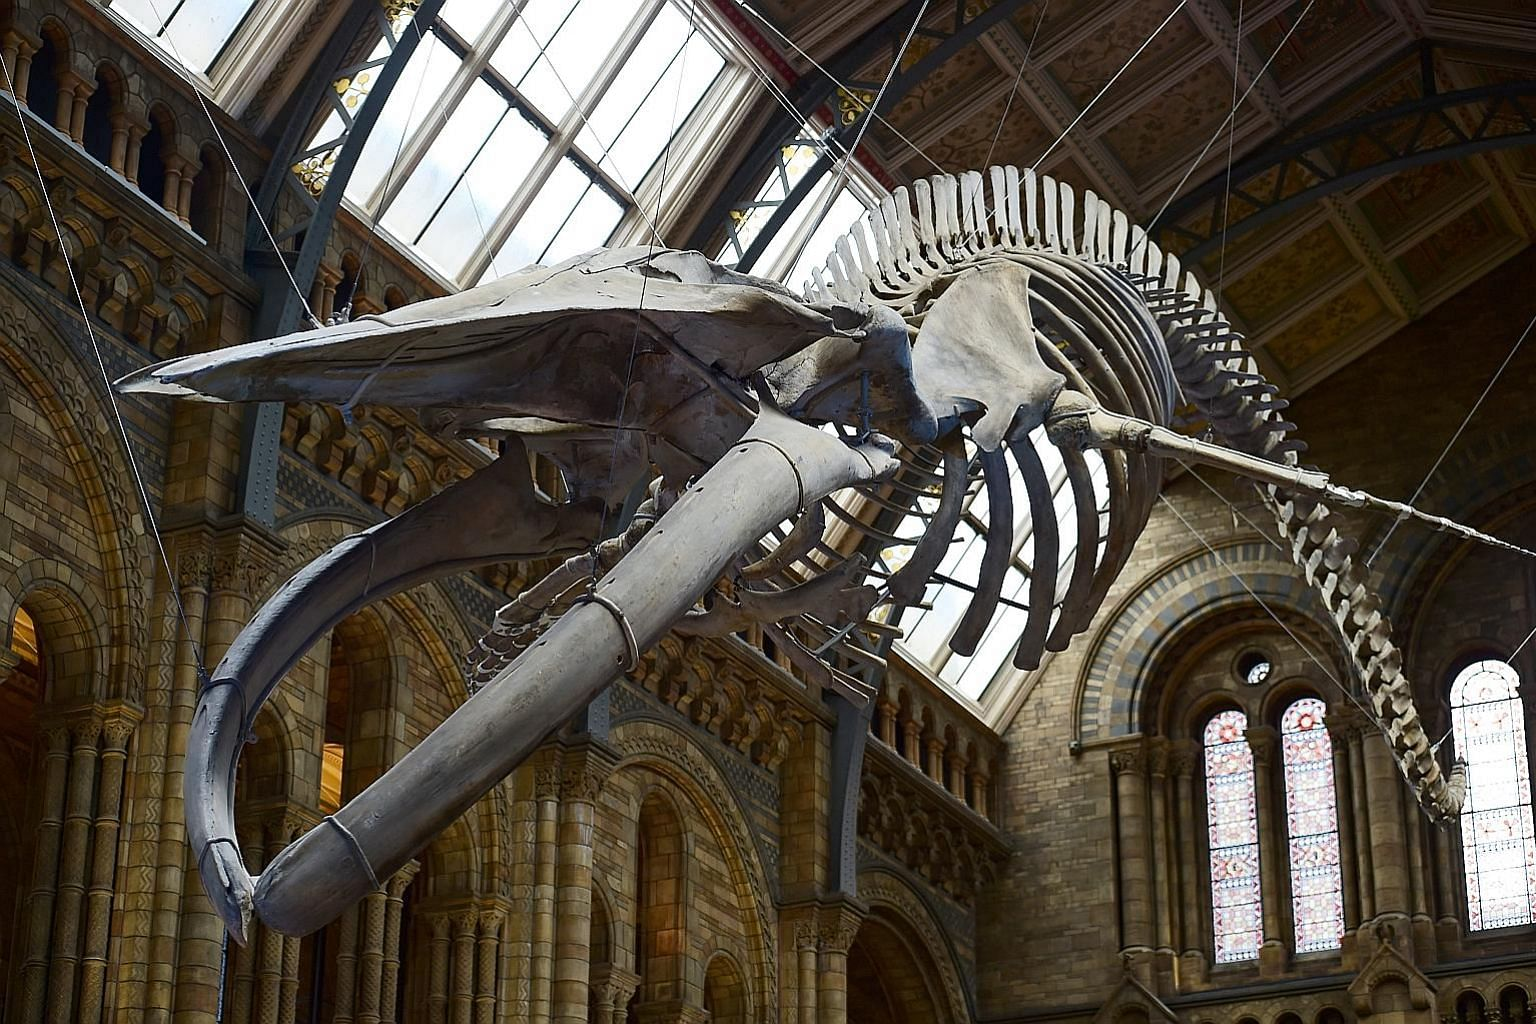 The real skeleton of Hope the blue whale, which died after becoming stranded in Wexford Harbour in Ireland 1891, takes centre stage in the atrium of London's Natural History Museum, replacing the replica skeleton of Dippy the diplodocus, which had gr